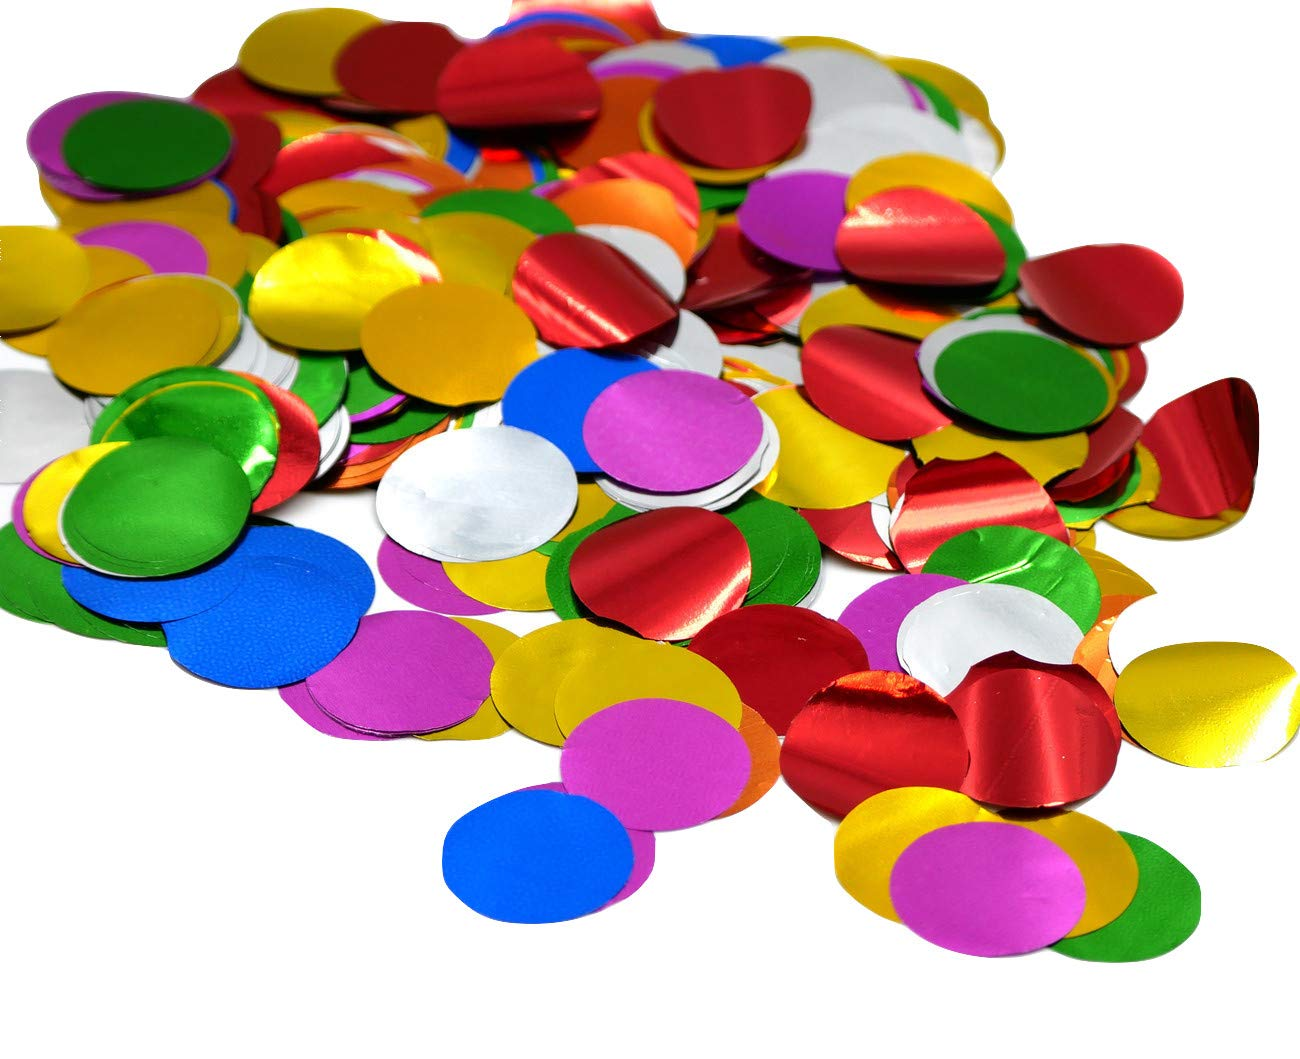 1'' Multicolor Metallic Circles for Arts and Crafts Confetti Poppers 1 Pound Bag